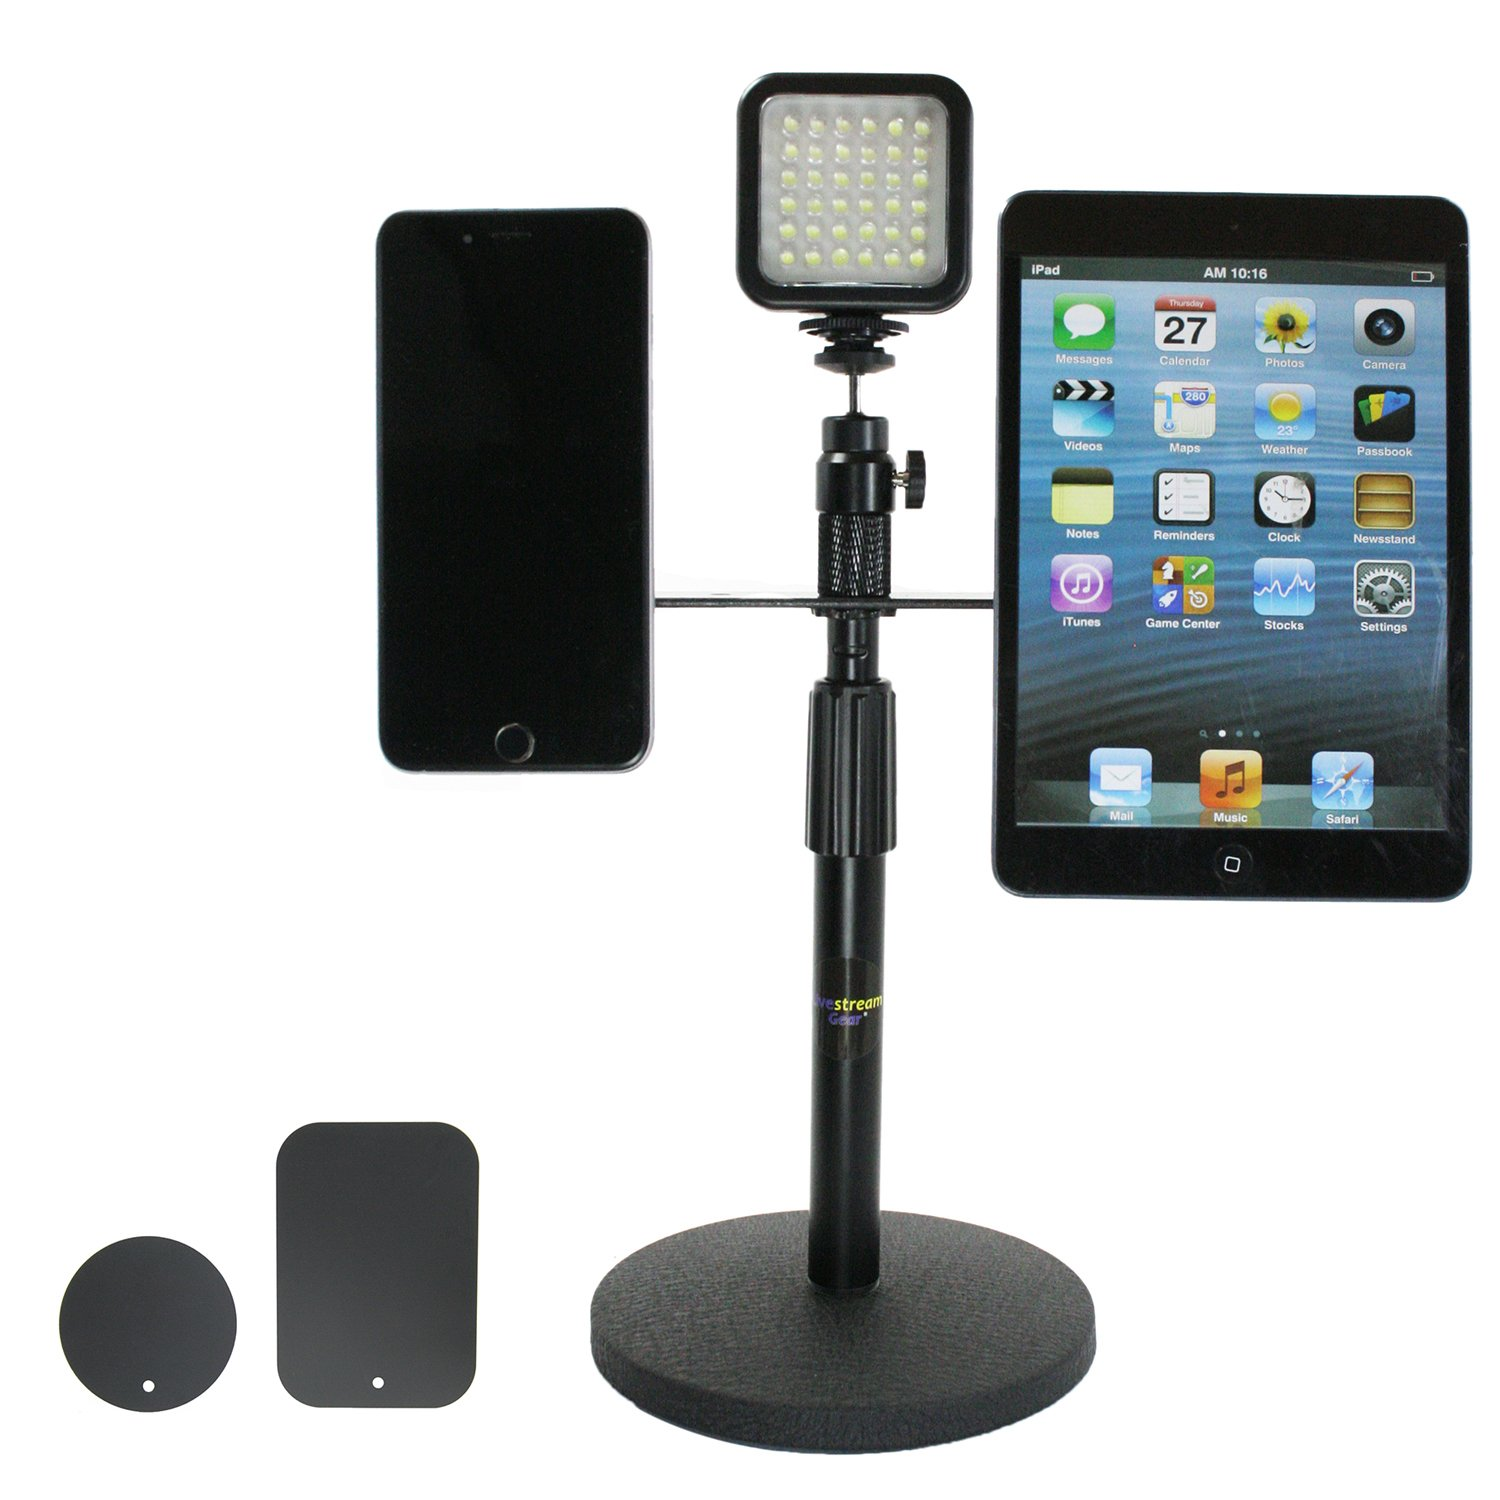 Livestream Gear - Dual Phone and LED Light Desktop Stand Setup with Magnetic Mount System. Mount 2 Phones via Magnets to This Weighted Desk Stand for Streaming with LED Lighting. Strong Hold.